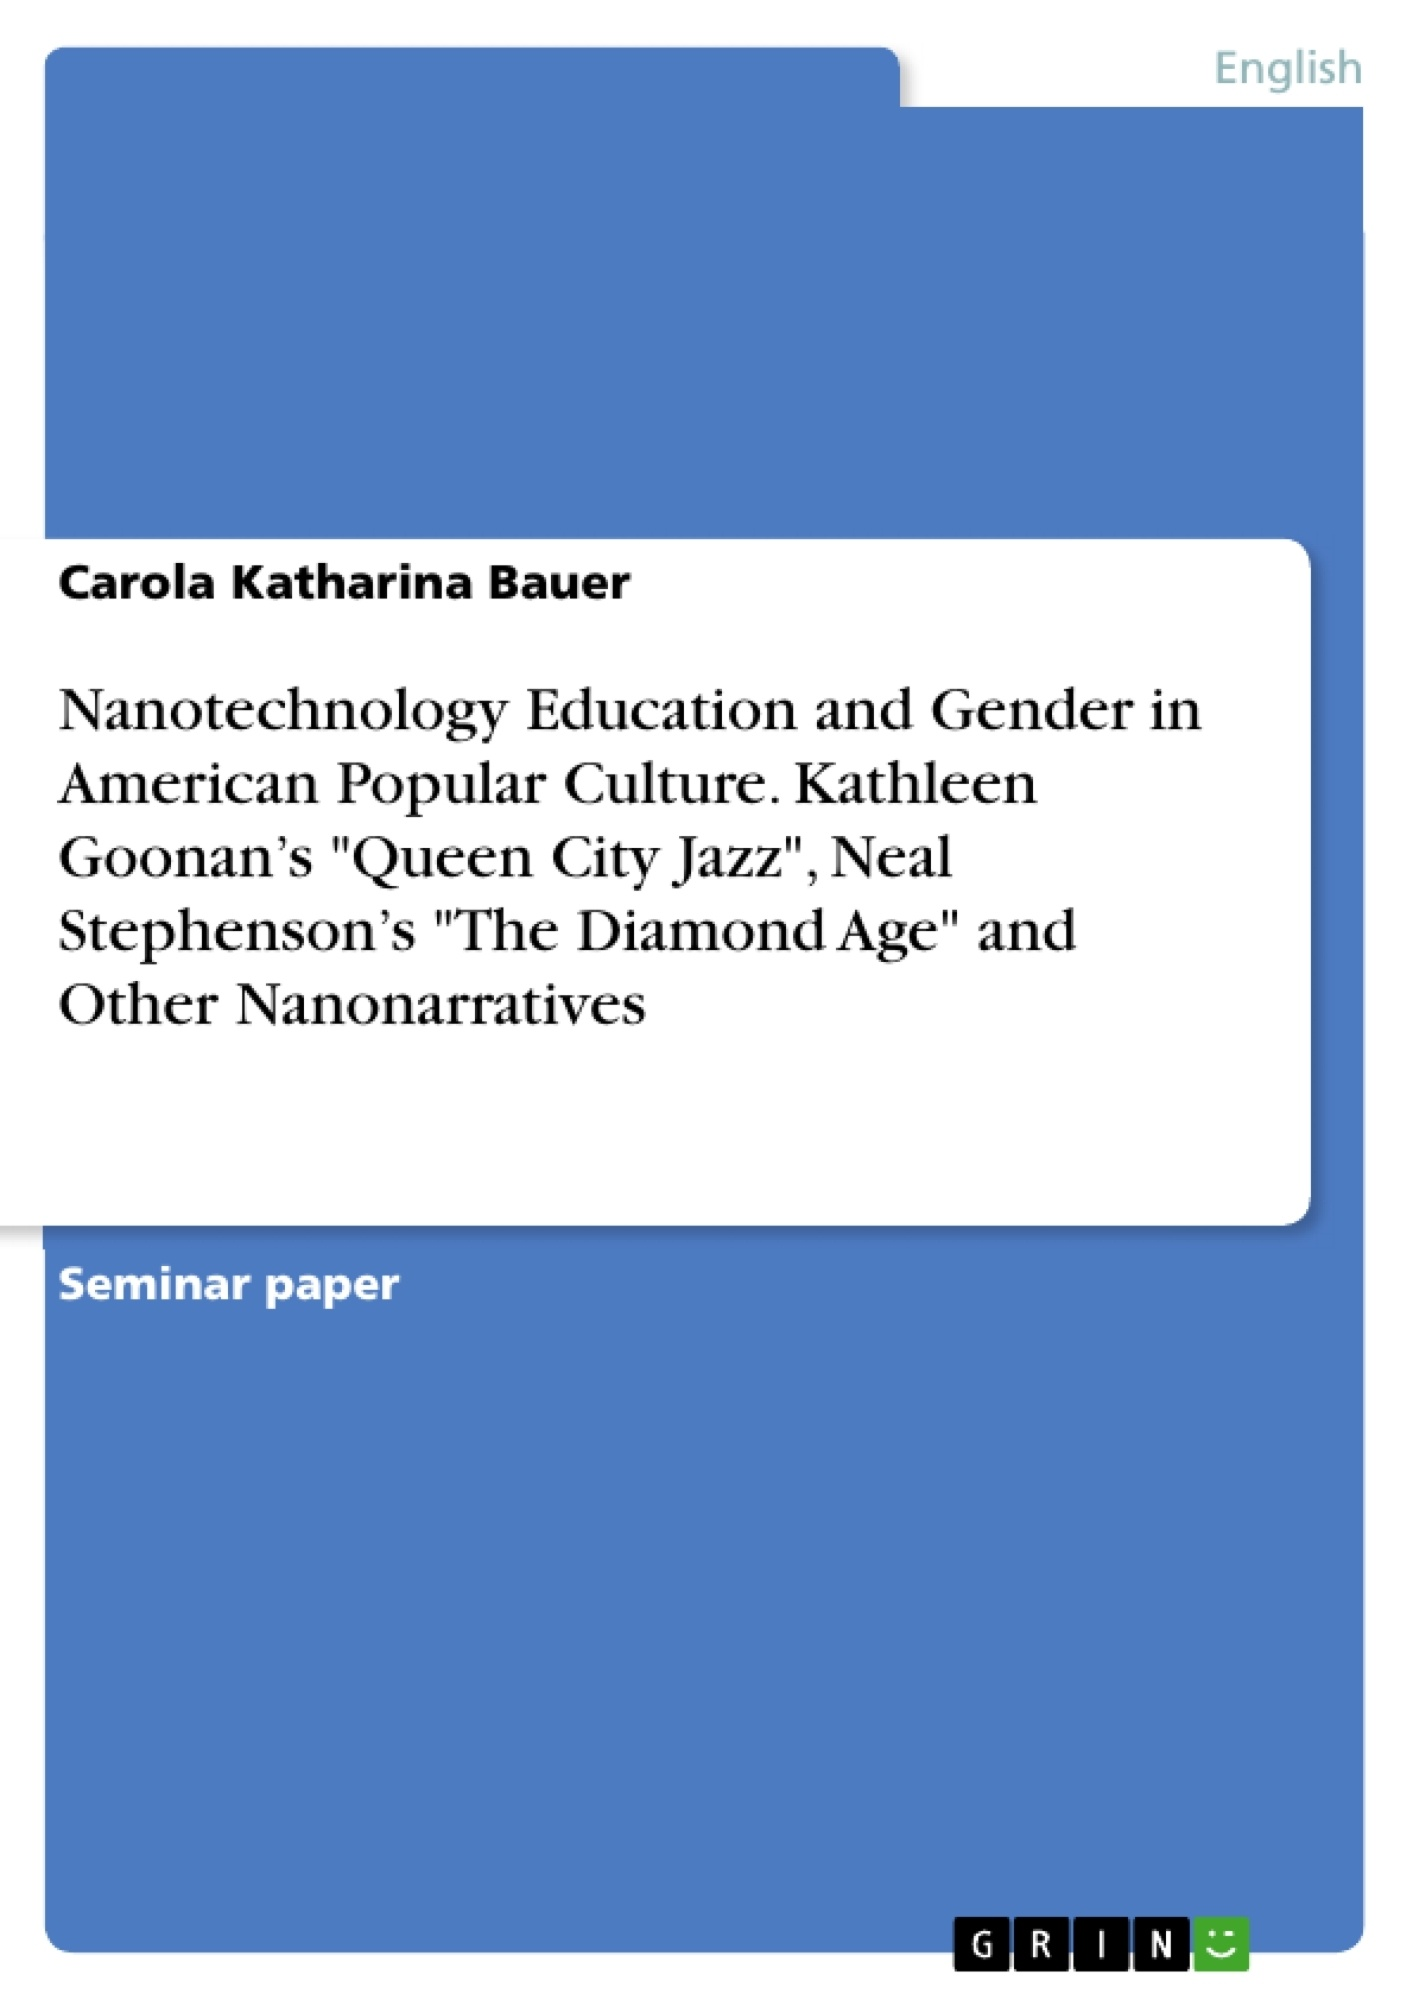 """Title: Nanotechnology Education and Gender in American Popular Culture. Kathleen Goonan's """"Queen City Jazz"""", Neal Stephenson's """"The Diamond Age"""" and Other Nanonarratives"""